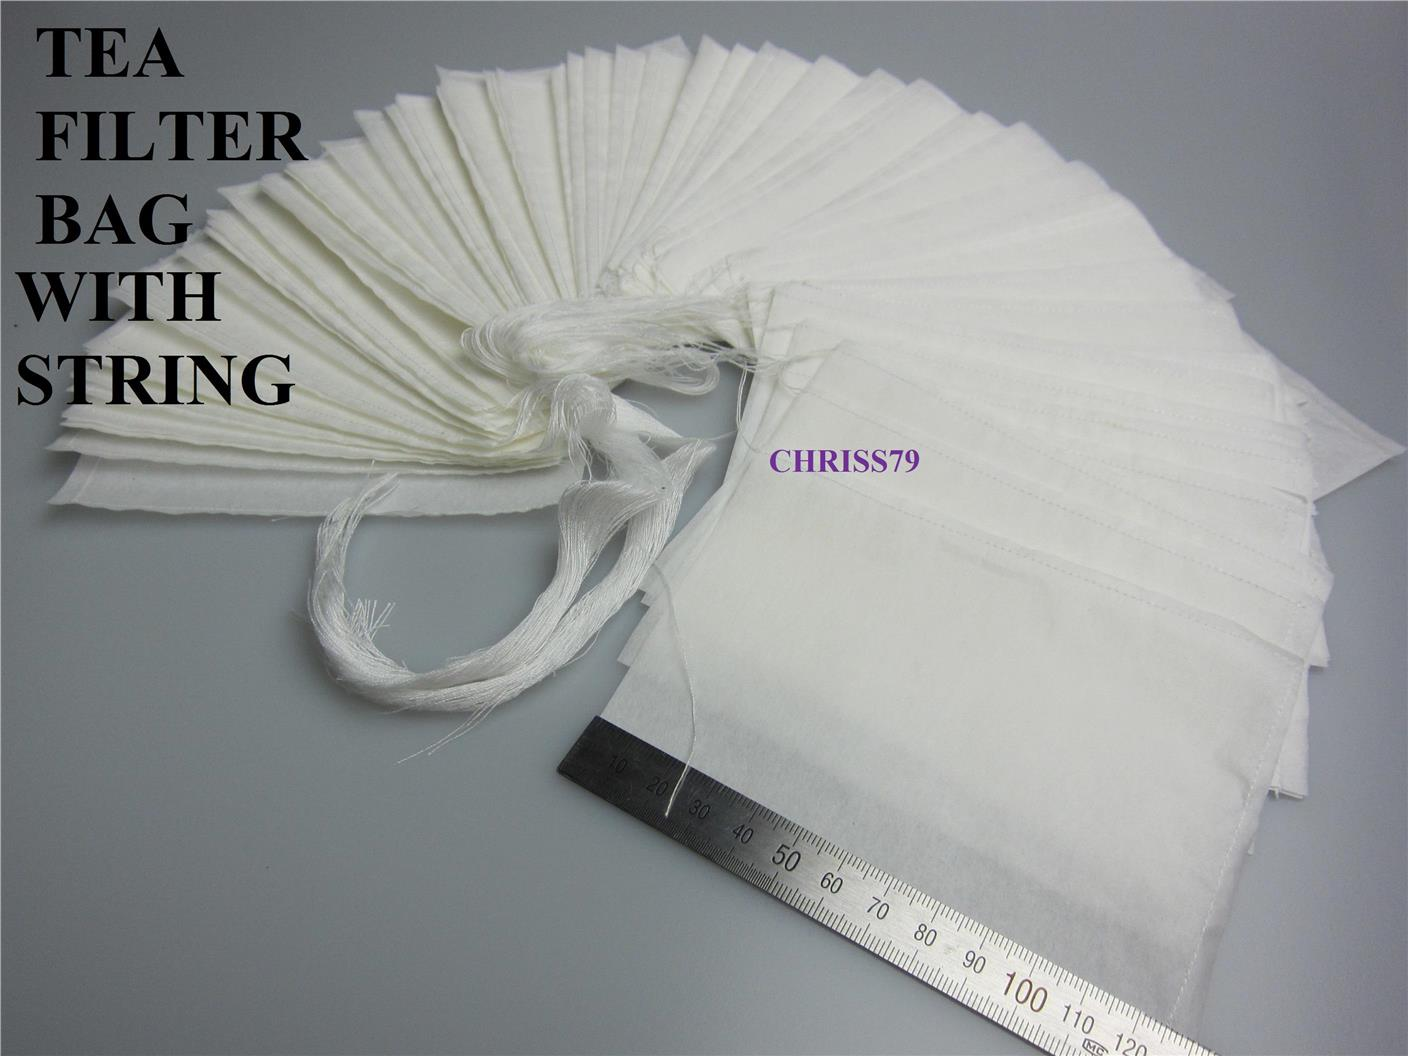 High Quality Tea Bag - Filter Bag With String